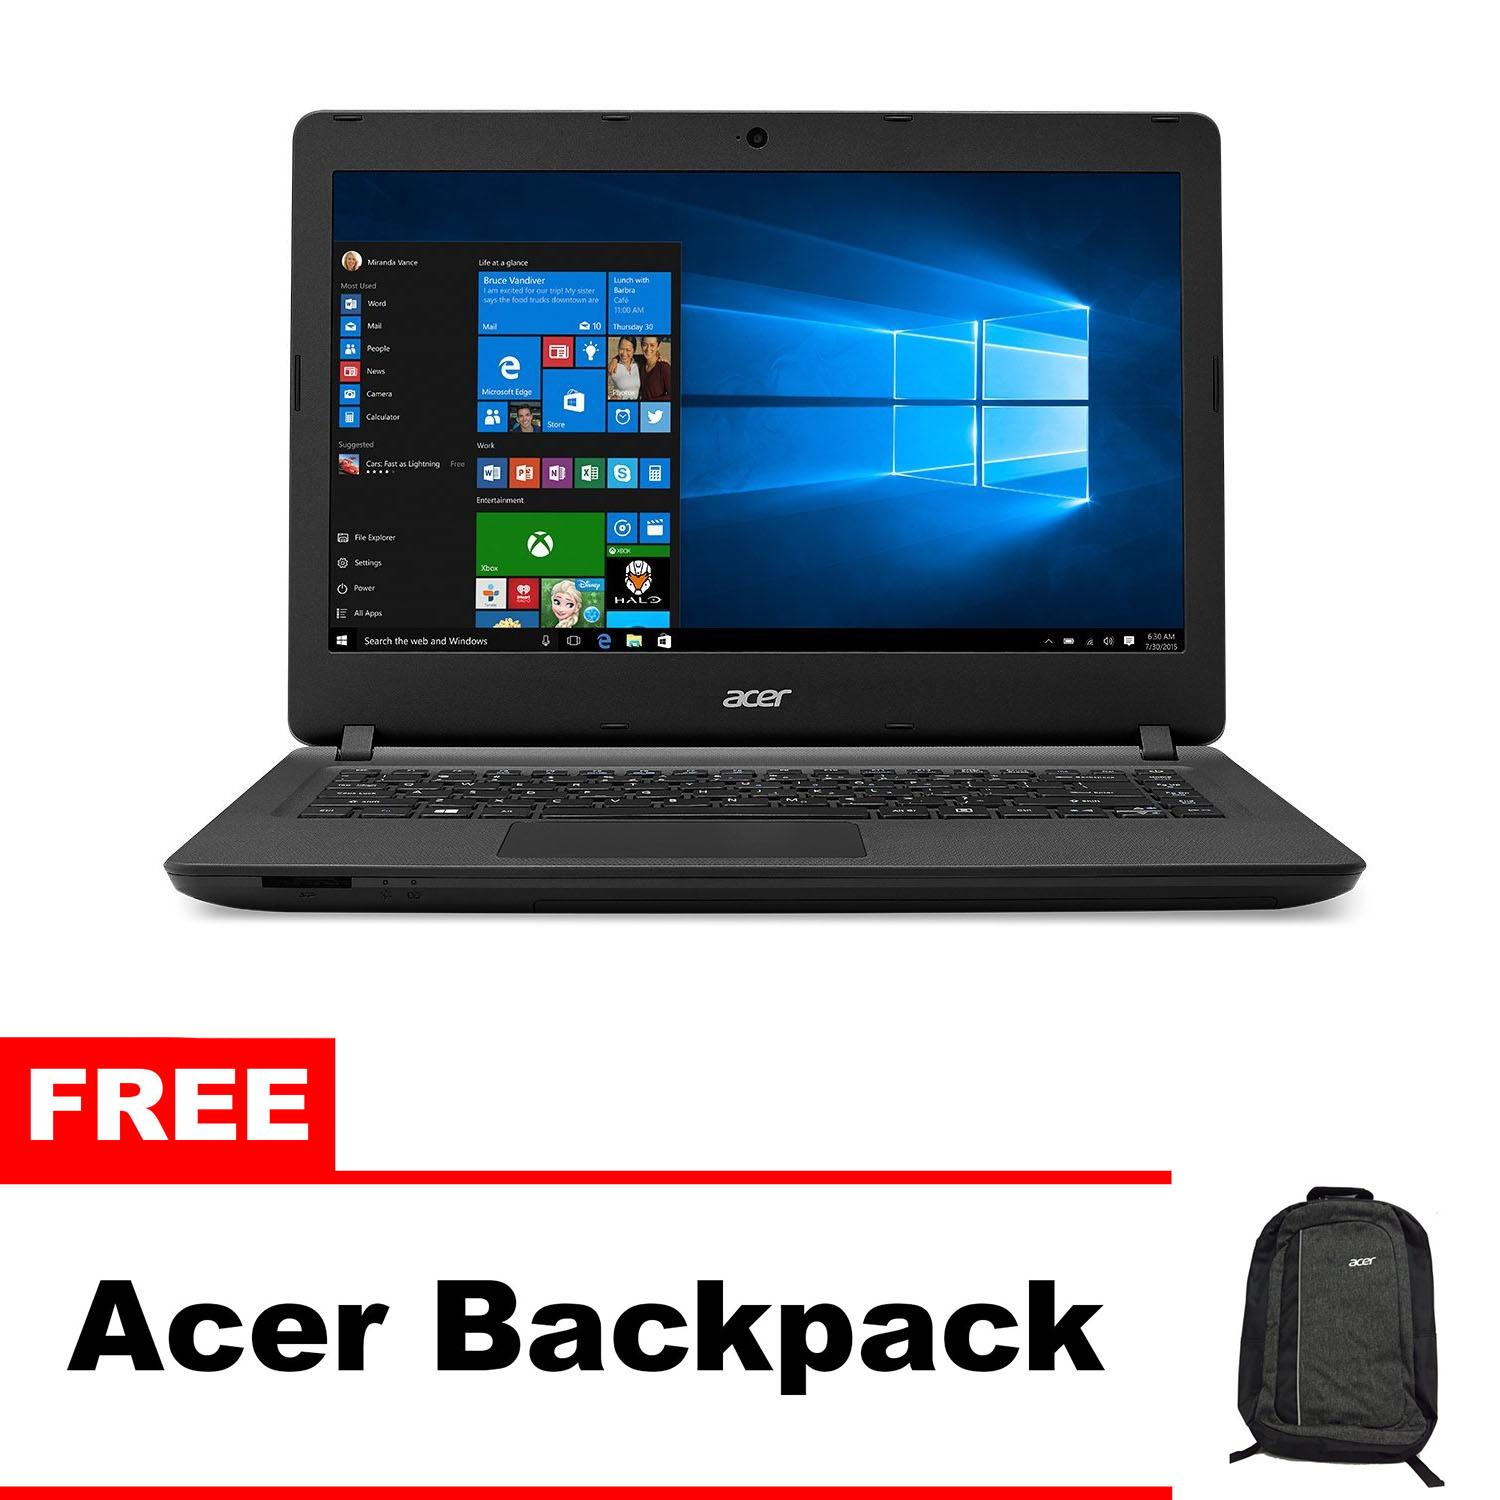 Acer Philippines Price List Phones Laptop Desktop Adaptor Charger Aspire 4739 4738 4741 4750 4736 4752 4740 Es1 432 C65j 14 Intel Celeron N3350 2gb 500gb